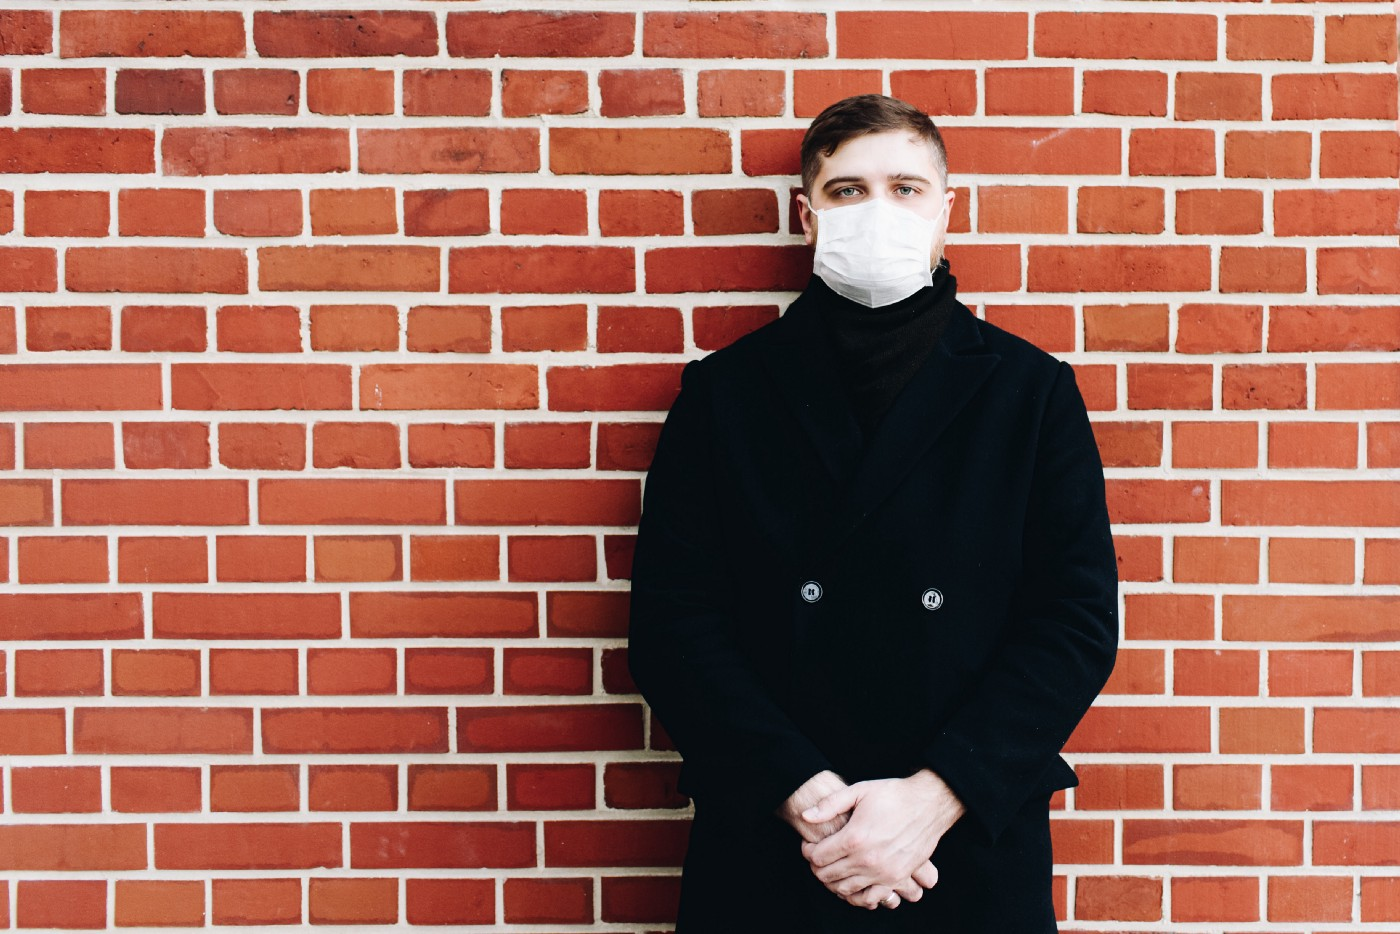 A man in a surgical mask stands against a brick wall.